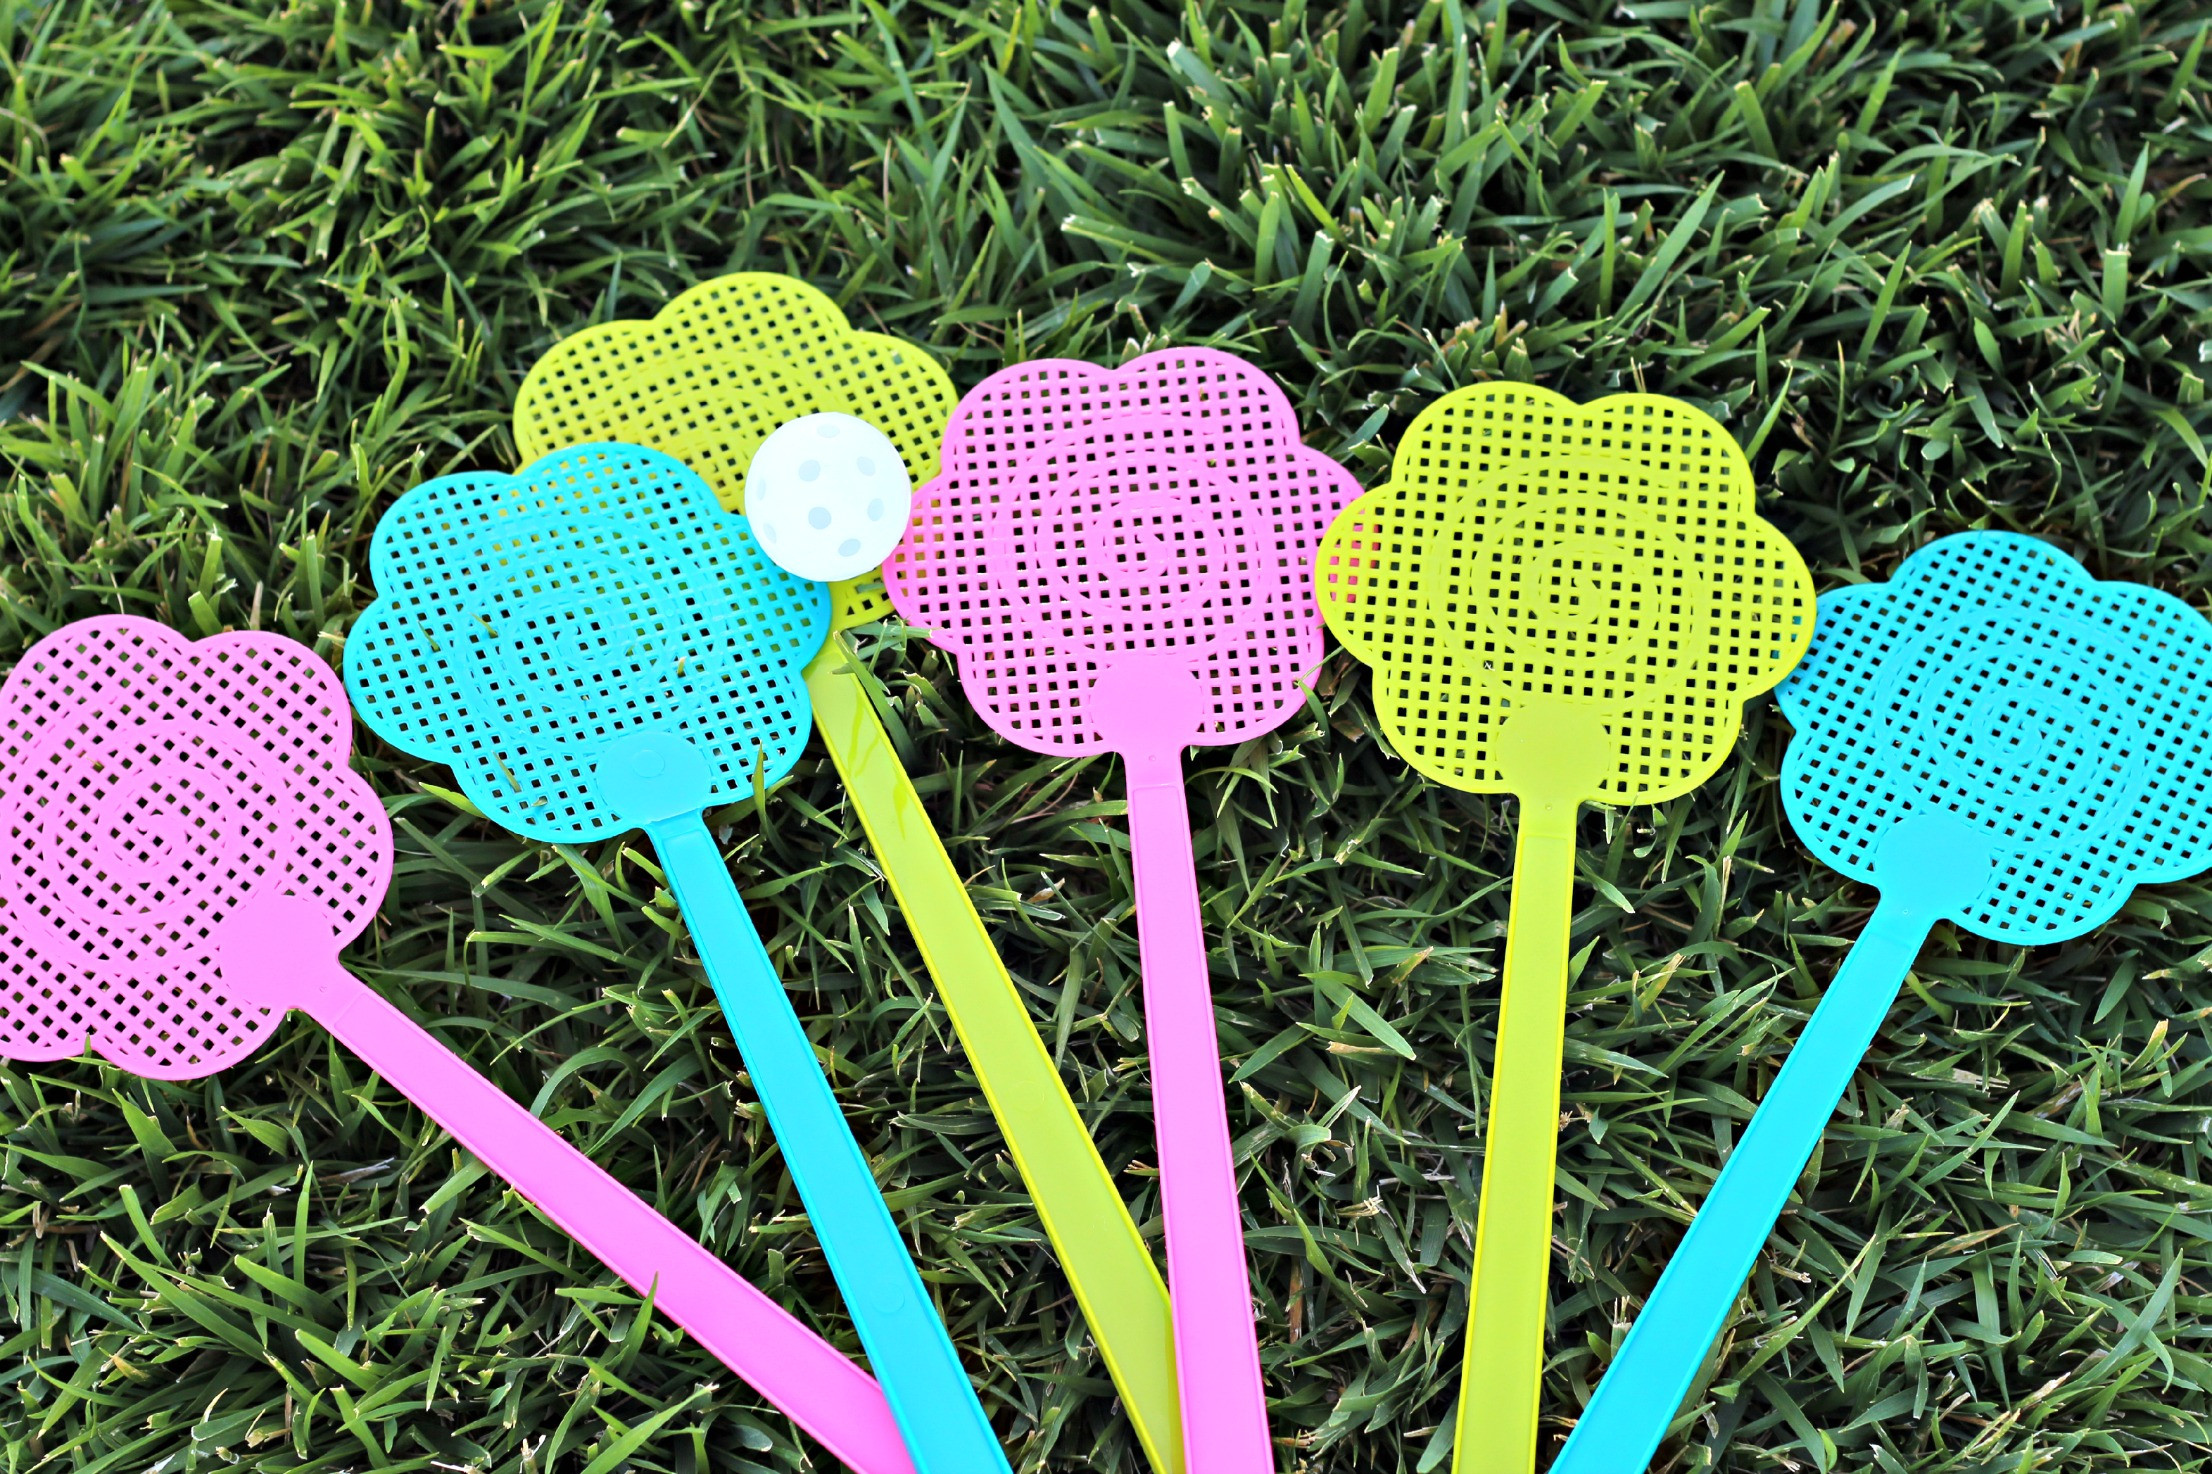 Best ideas about DIY Outdoor Games For Kids . Save or Pin DIY Outdoor Games for Kids Organize and Decorate Everything Now.